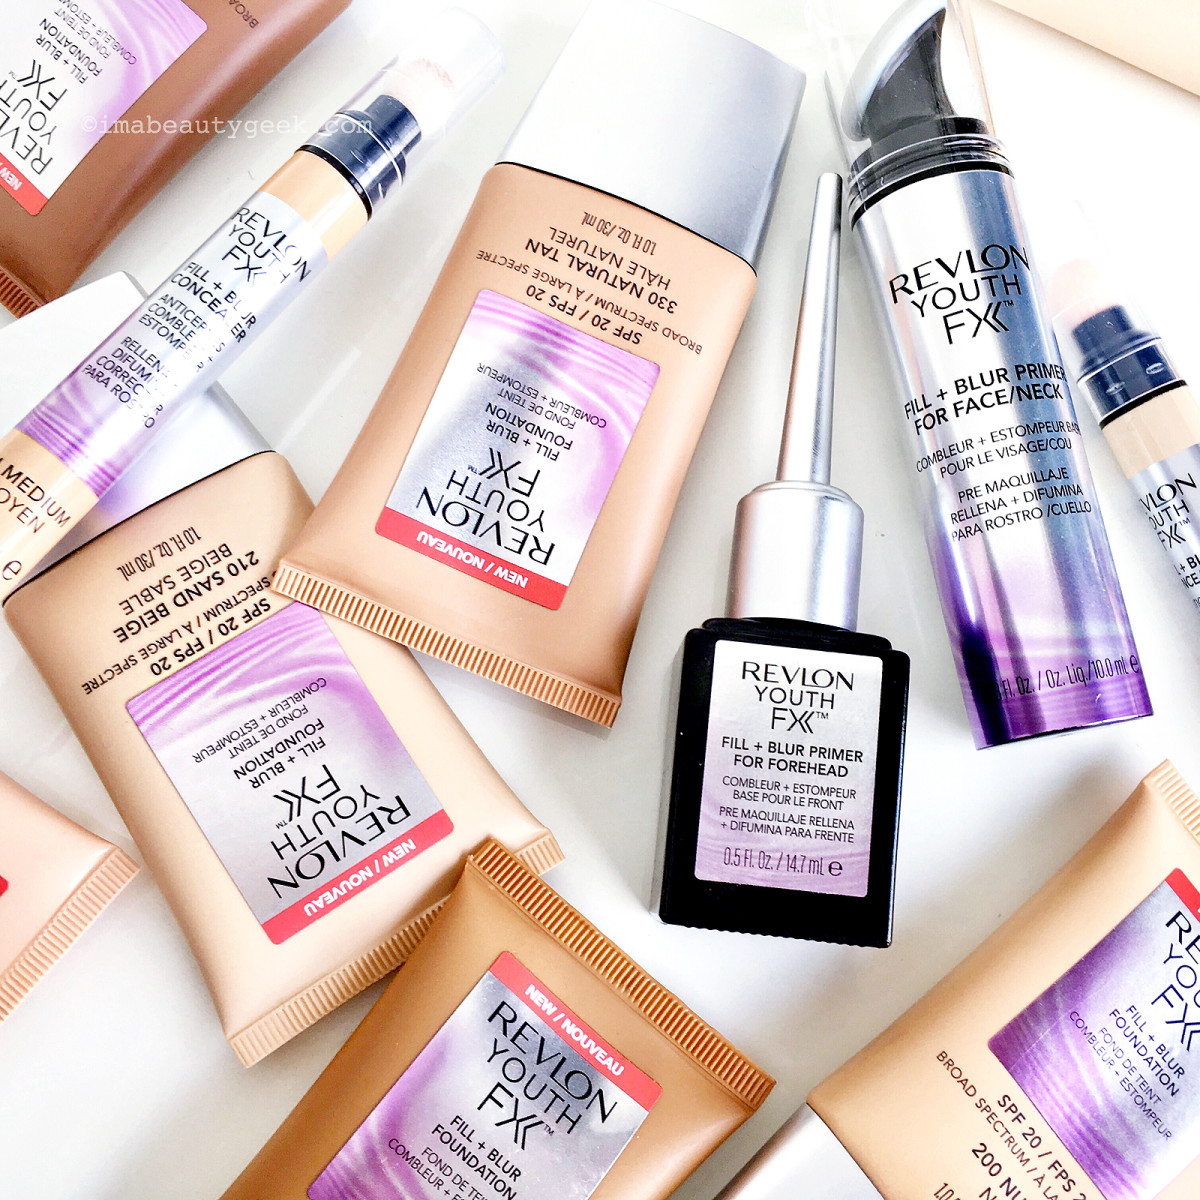 Revlon Youth FX Fill & Blur primers, foundations and concealers